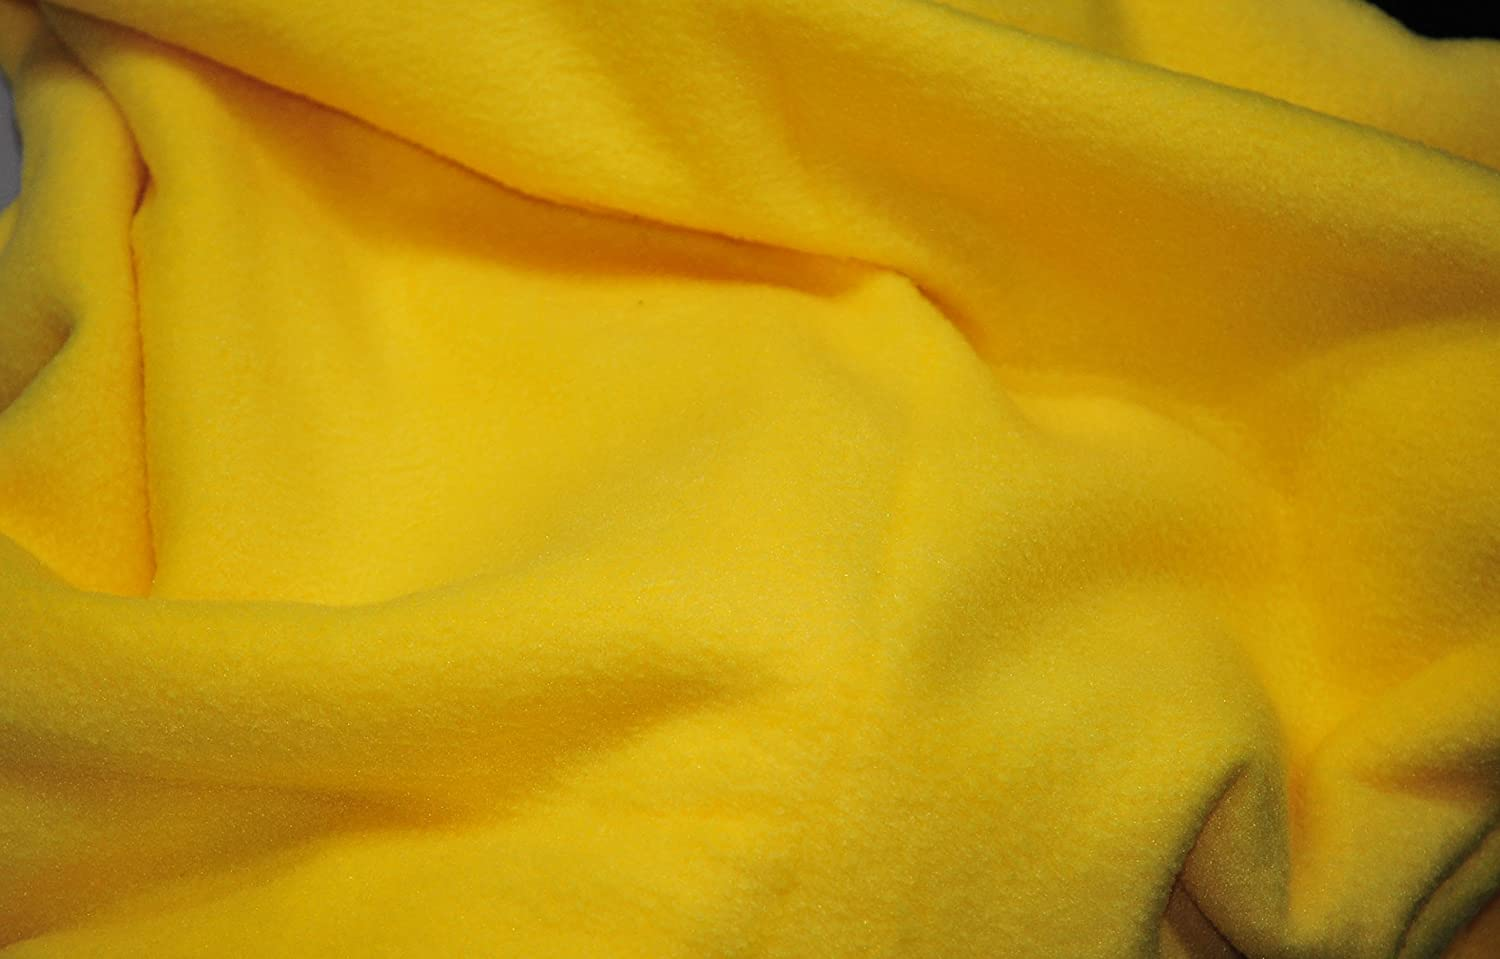 10 Yards Solid and Print Bolt Solid Anti-Pill Polar Fleece; No-Sew Tie Blanket Fabric Rolled up Full Piece (Yellow) 81mWmSYTs1L